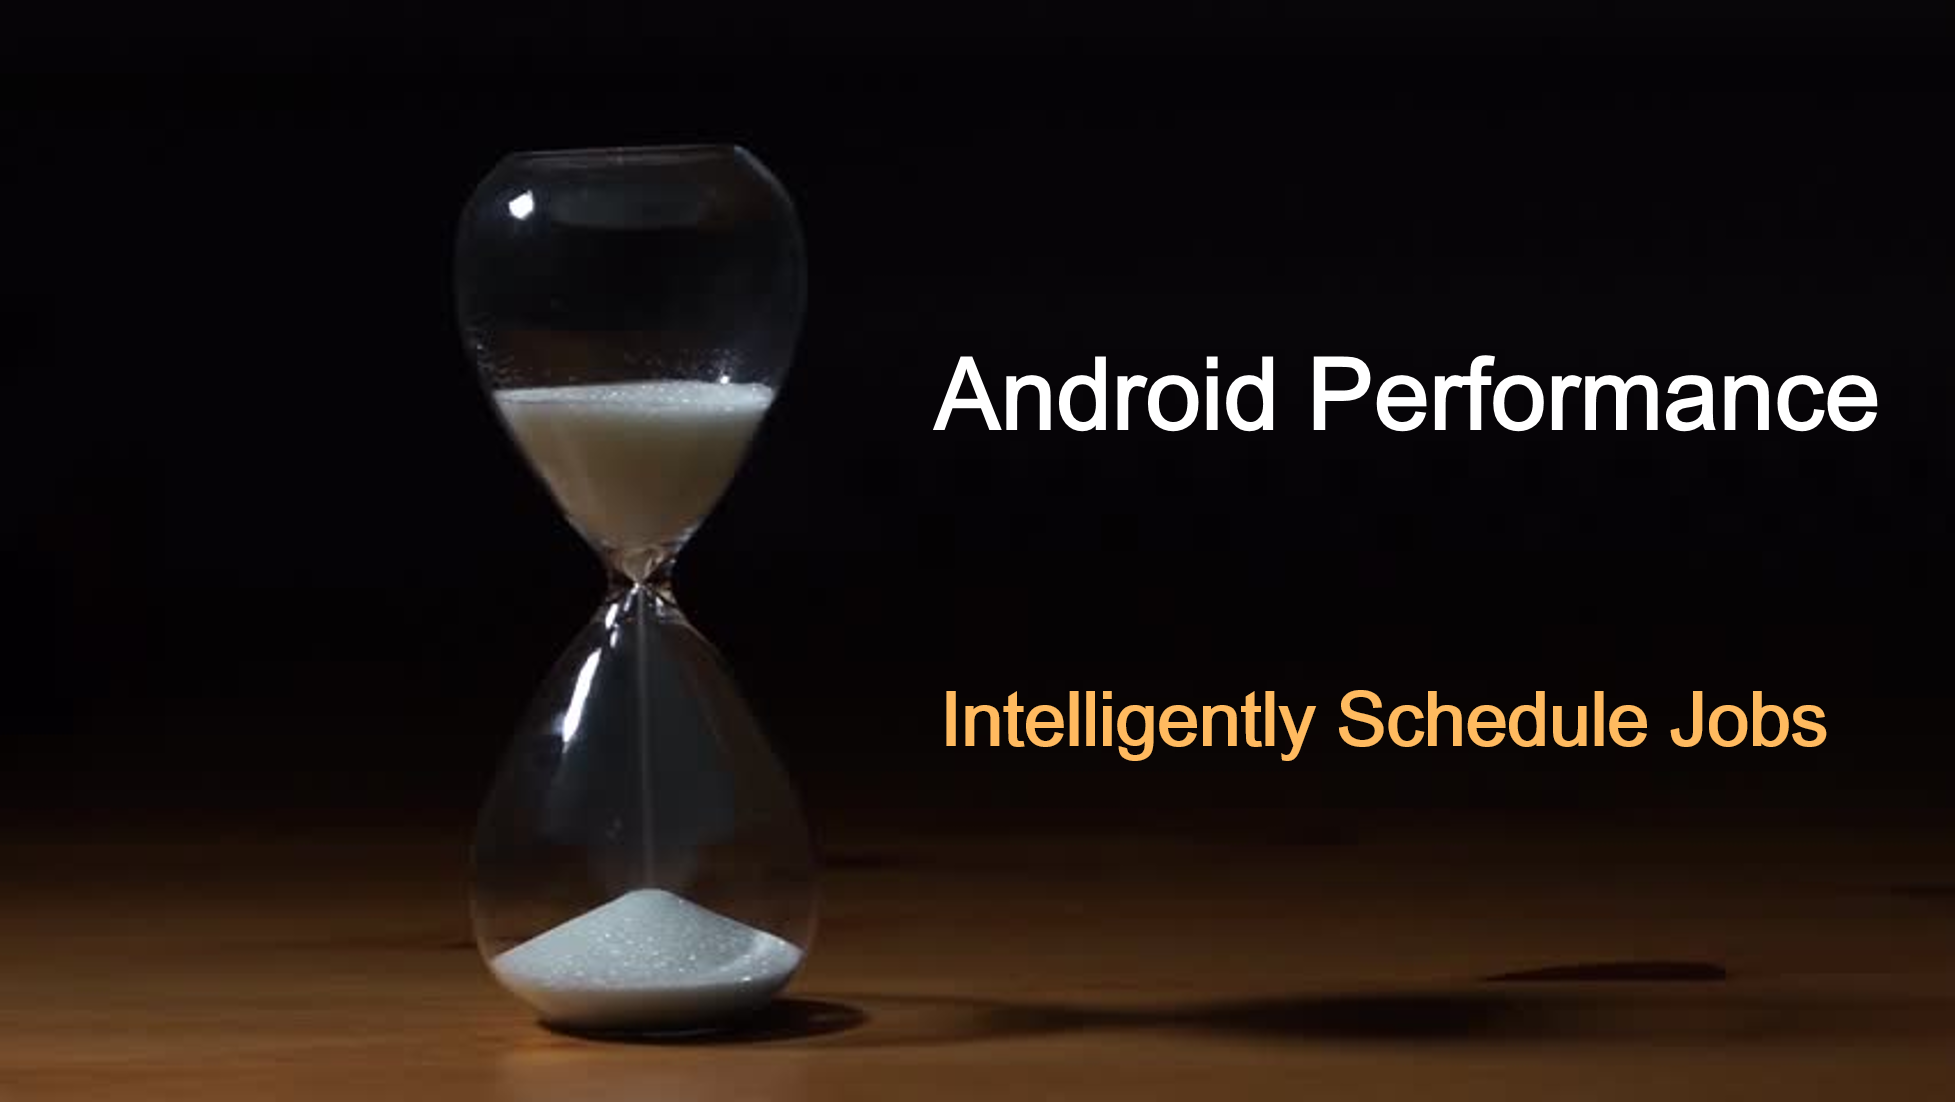 Schedule tasks and jobs intelligently in Android - AndroidPub